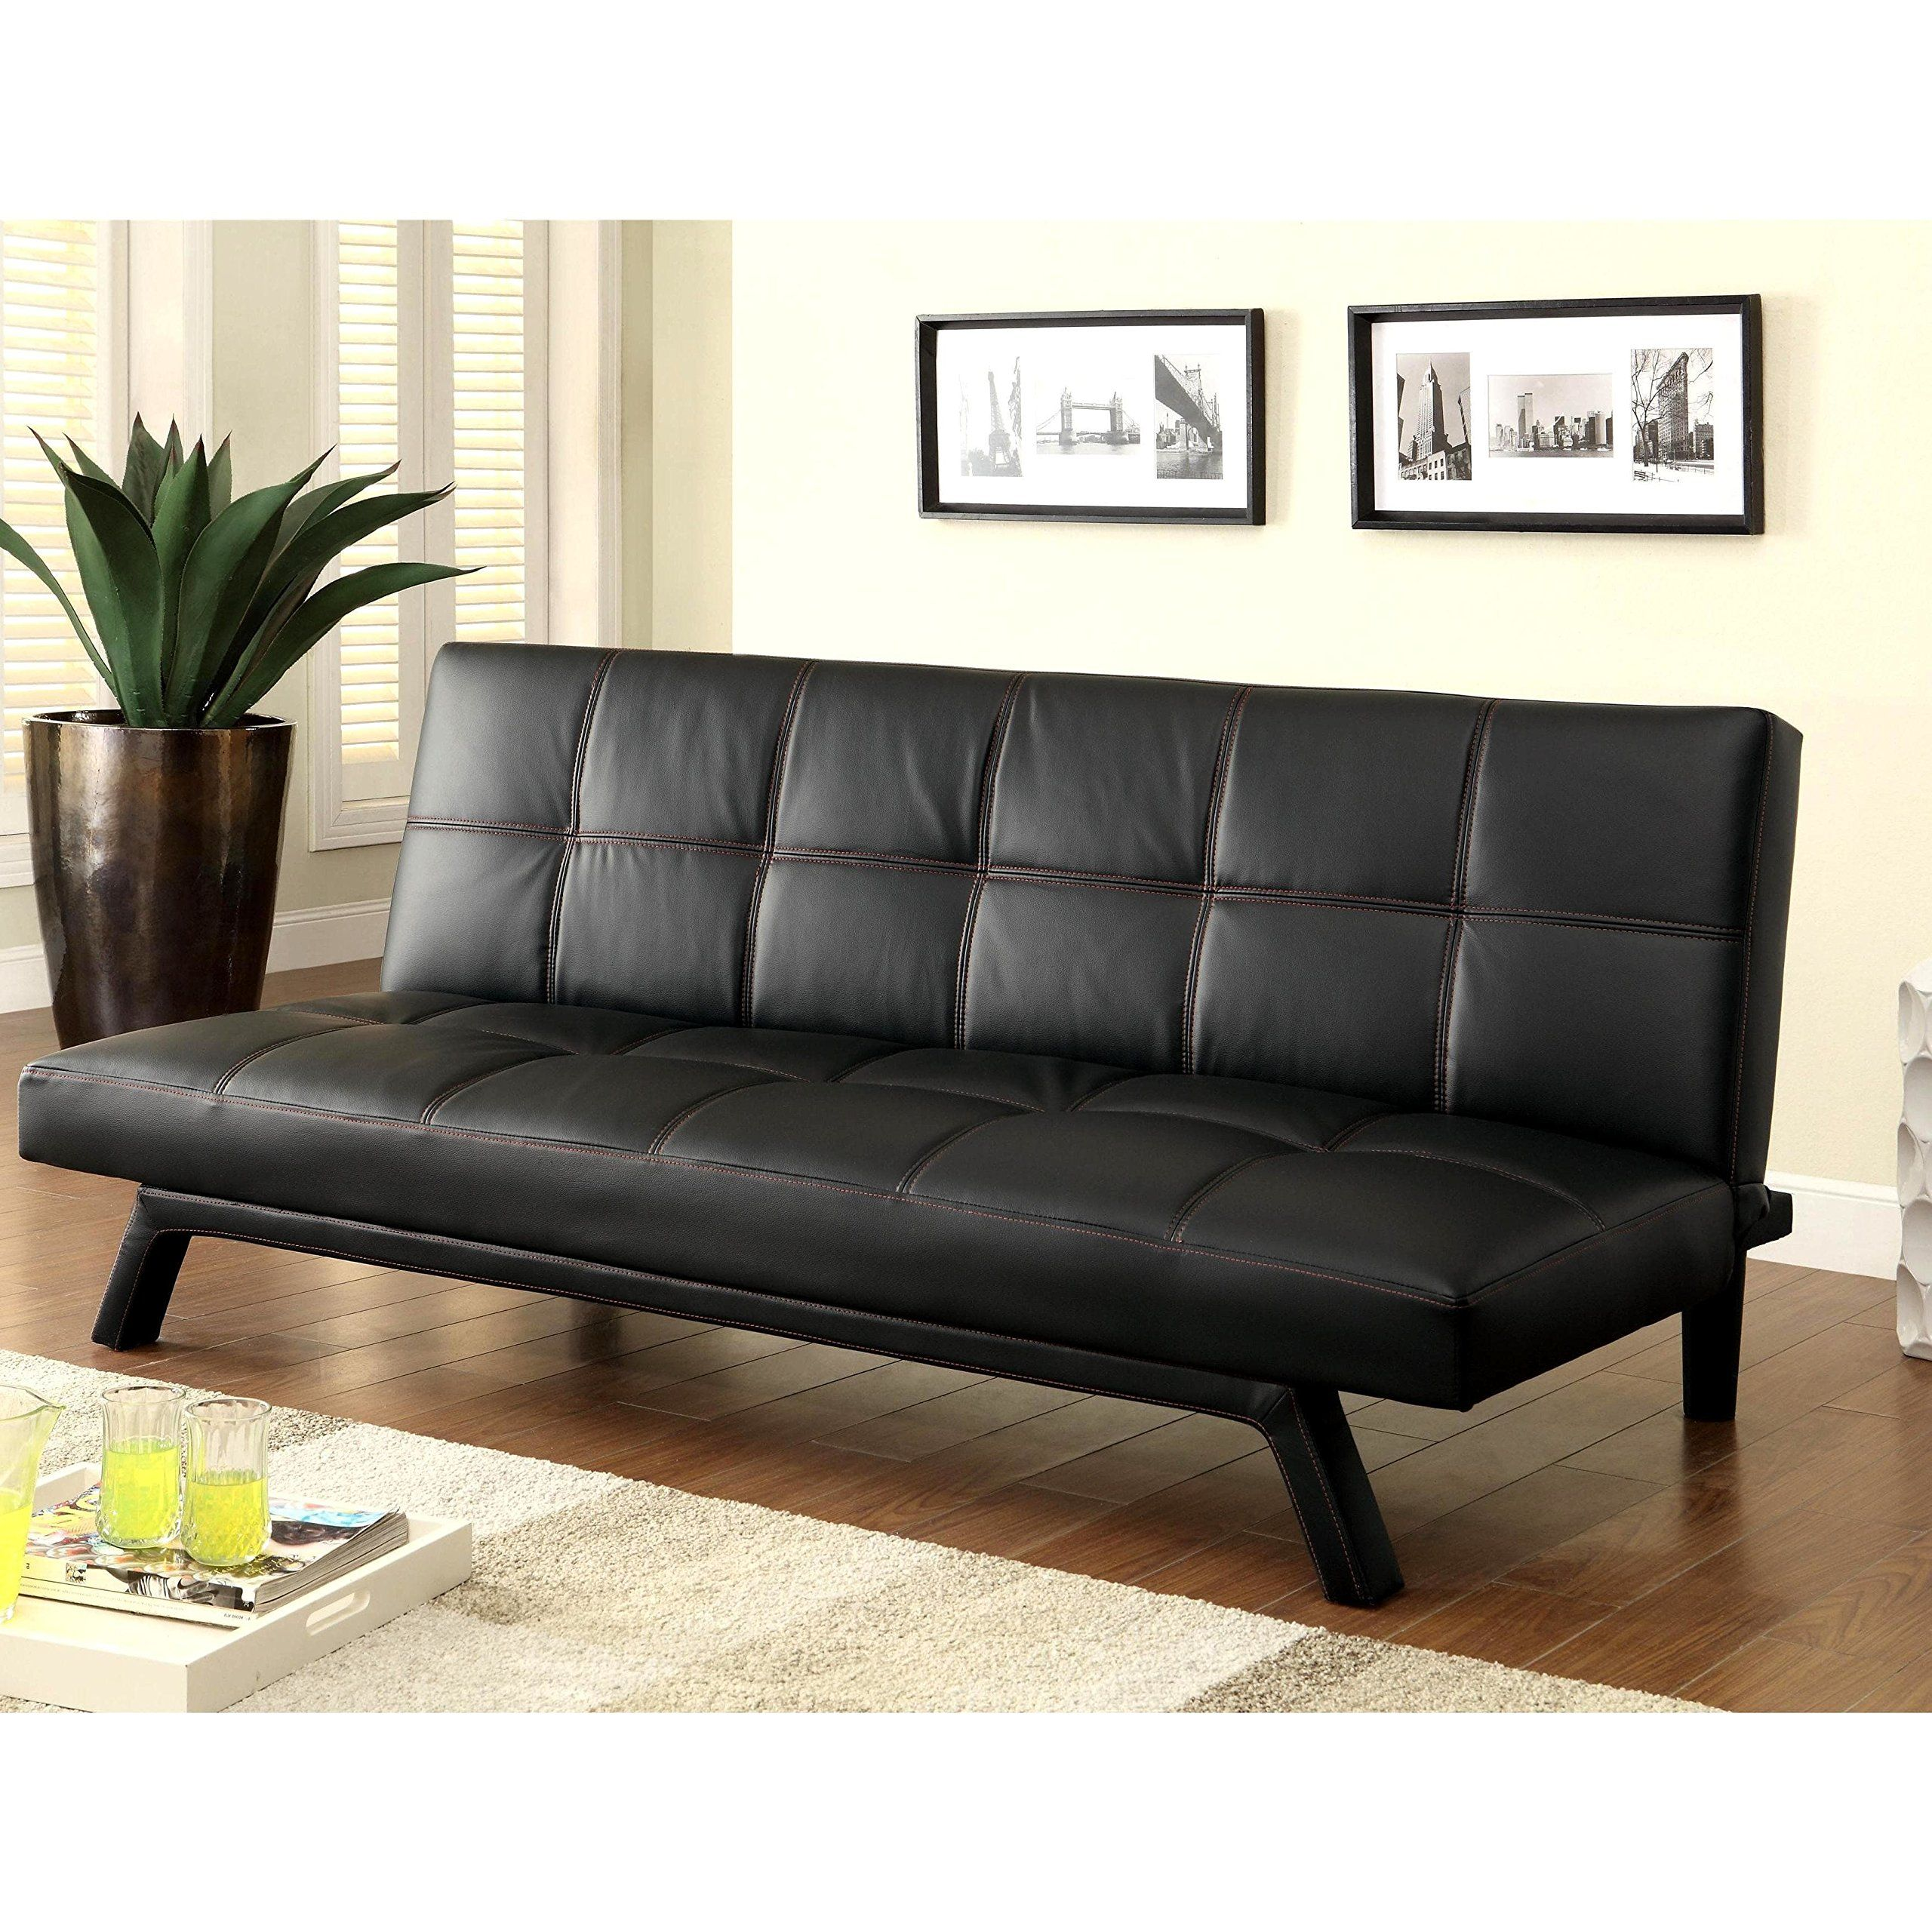 into turns black futon sleeper idea bed unique sofa sofas couch ideas of best convertible design that